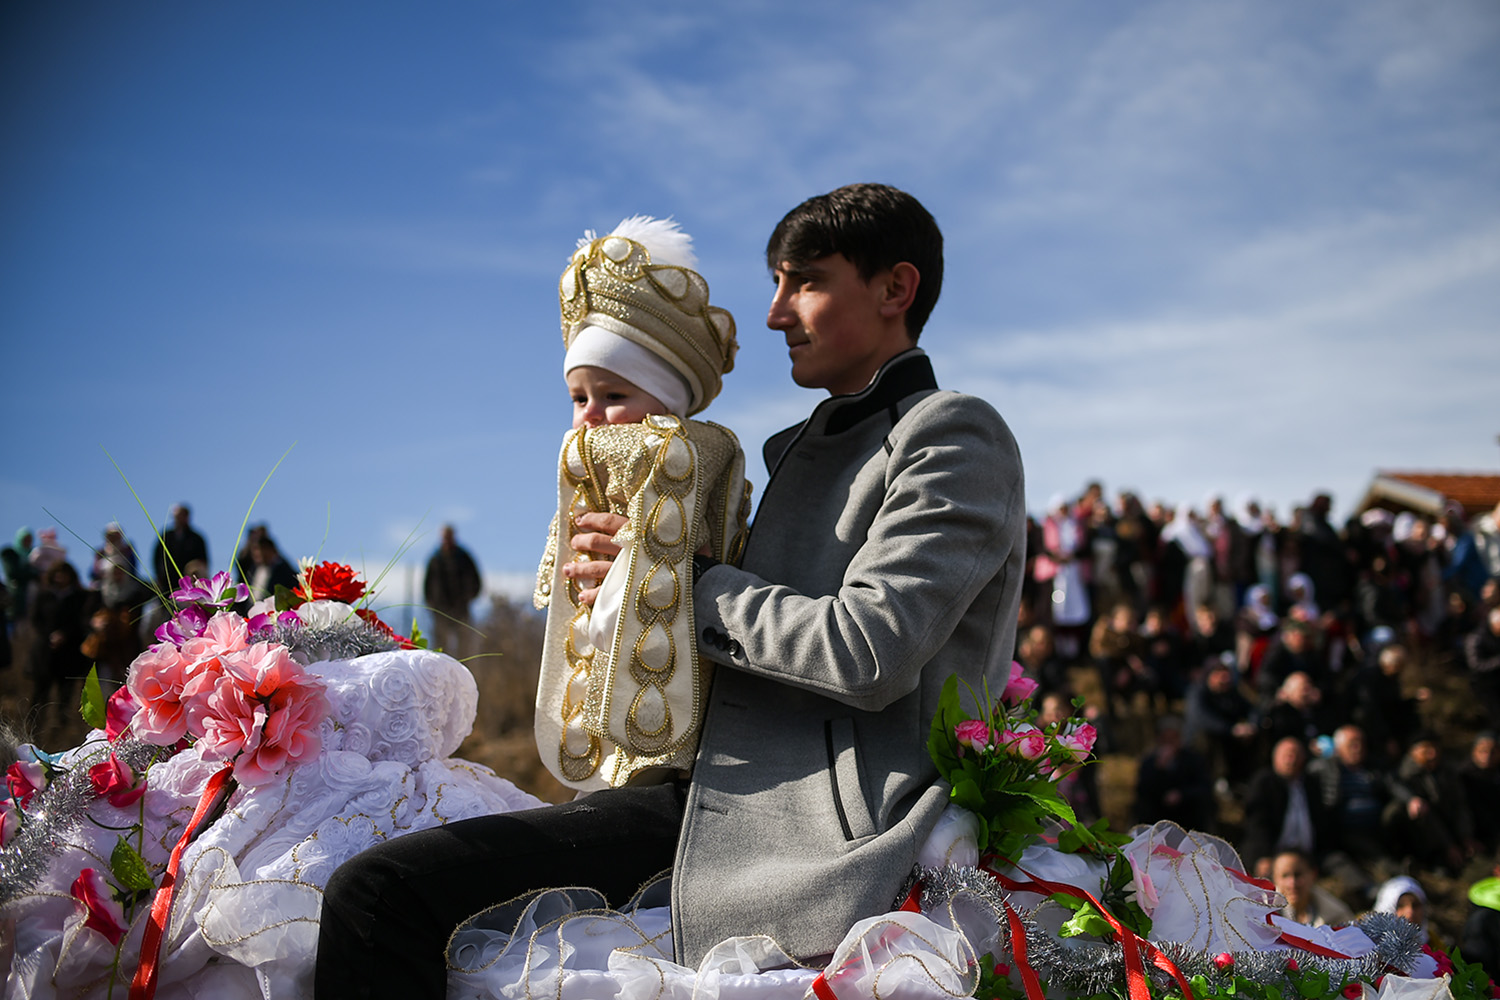 A Bulgarian Muslim man holds his son during a procession, part of a mass circumcision ceremony for young boys, in the village of Ribnovo, Bulgaria, on Feb. 23. NIKOLAY DOYCHINOV/AFP via Getty Images